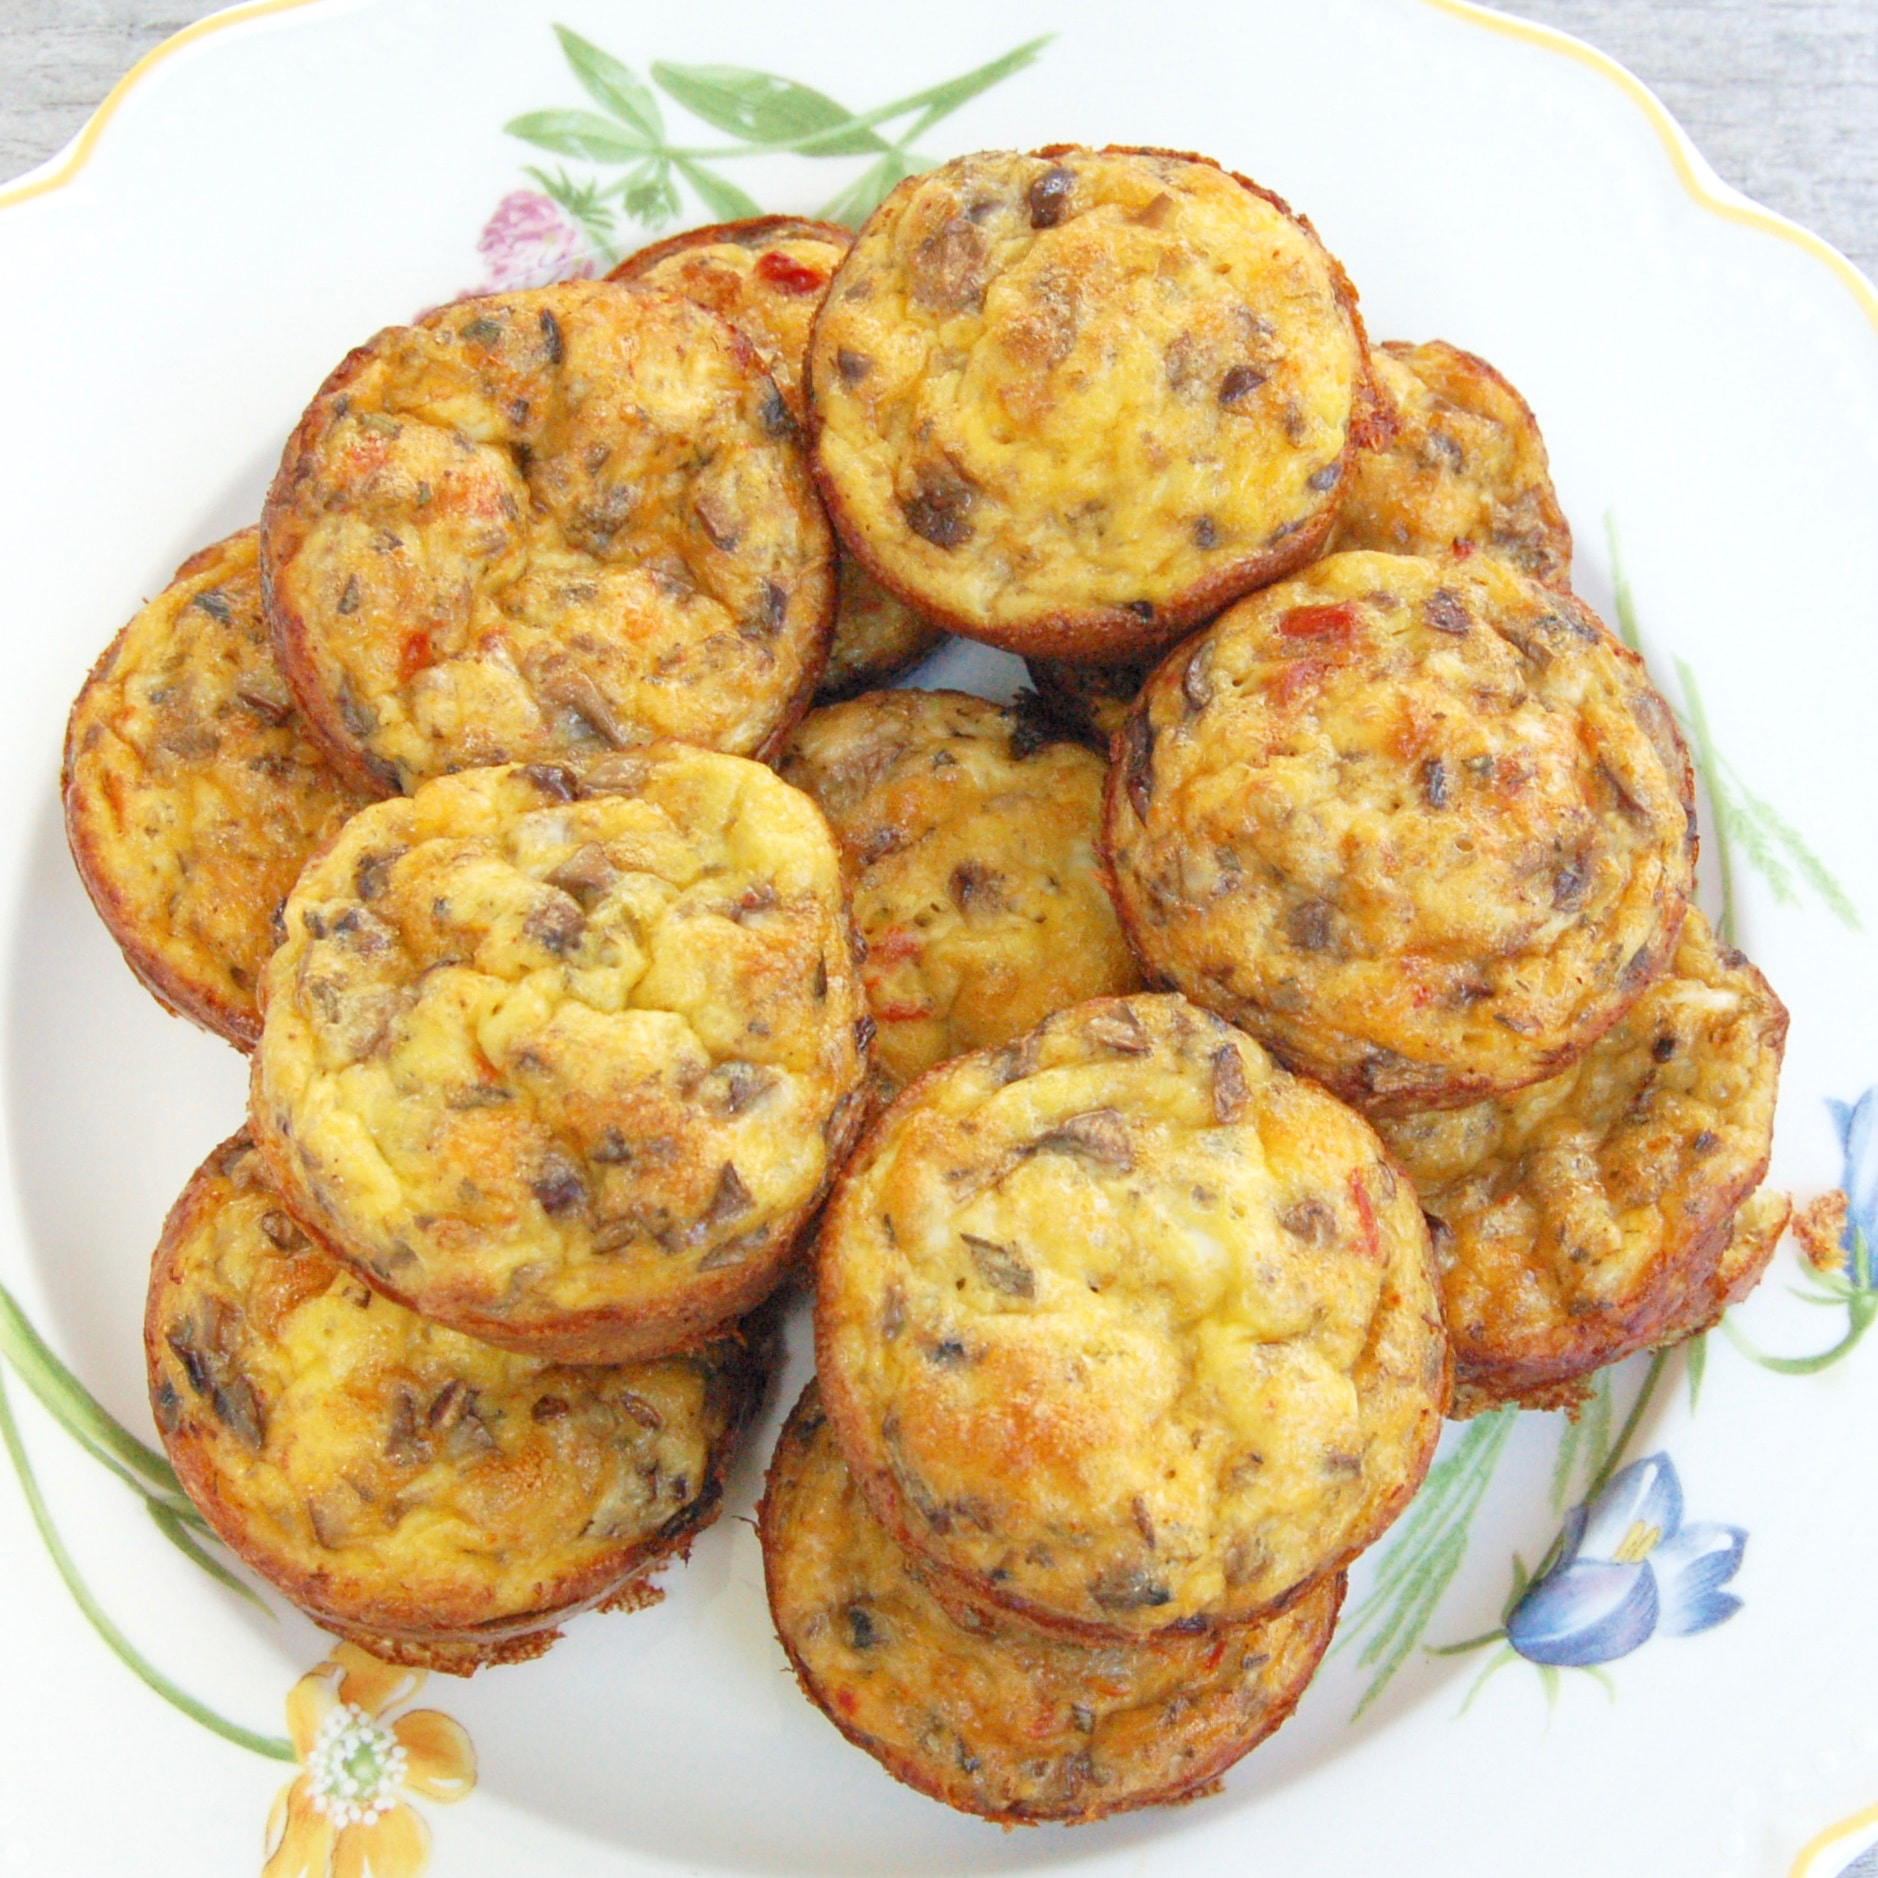 Veggie Egg Muffins are a make-ahead recipe perfect for breakfast on rushed mornings and your children's lunchbox. Easy, healthy, and totally customizable to your family's preferences! Get the gluten-free, vegetarian, and vegan-friendly recipe @jlevinsonrd.